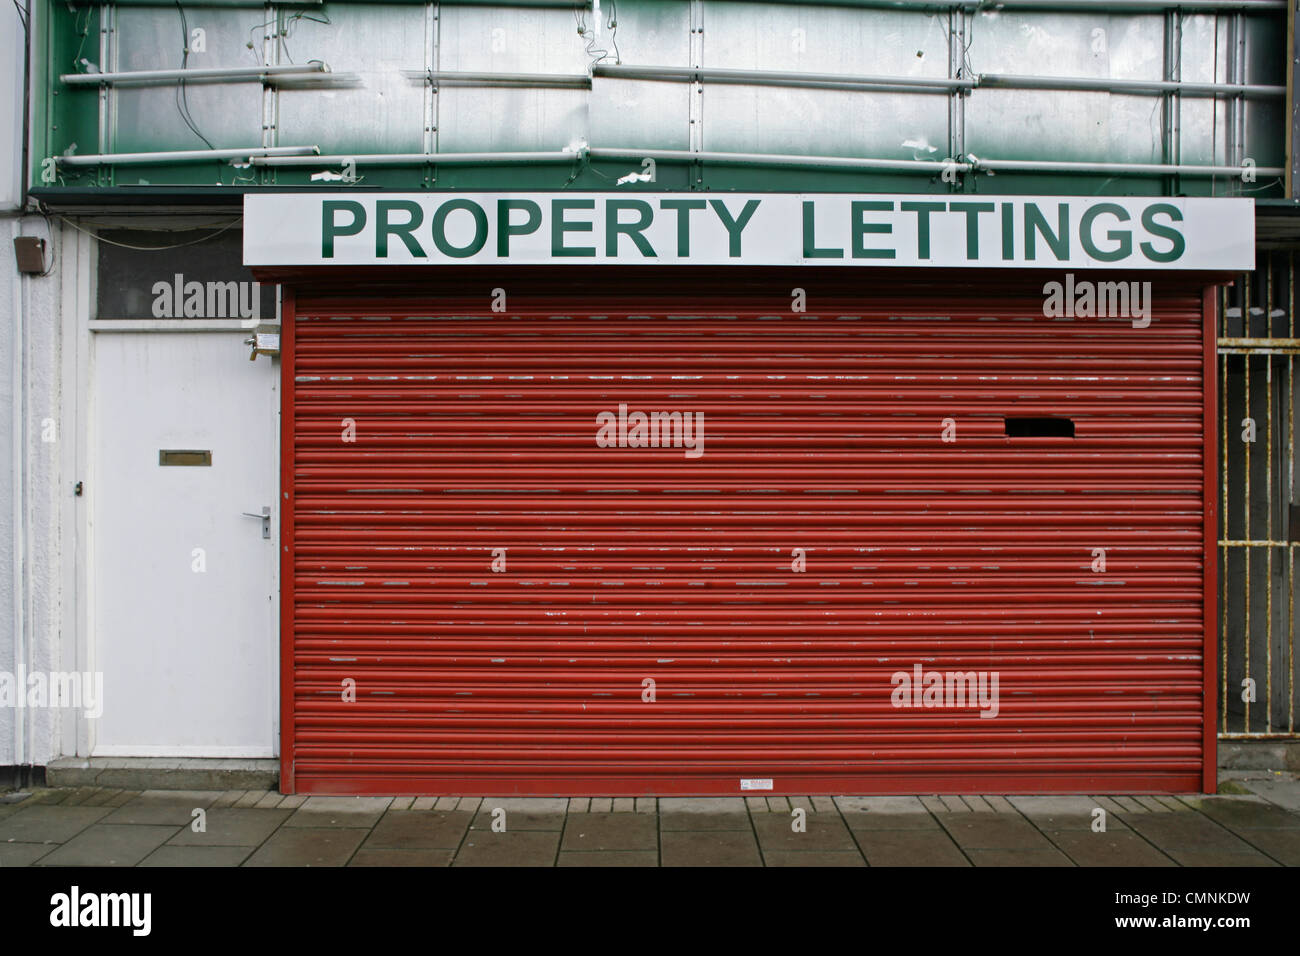 Vacant property lettings office, Grimsby, North East Lincolnshire. - Stock Image